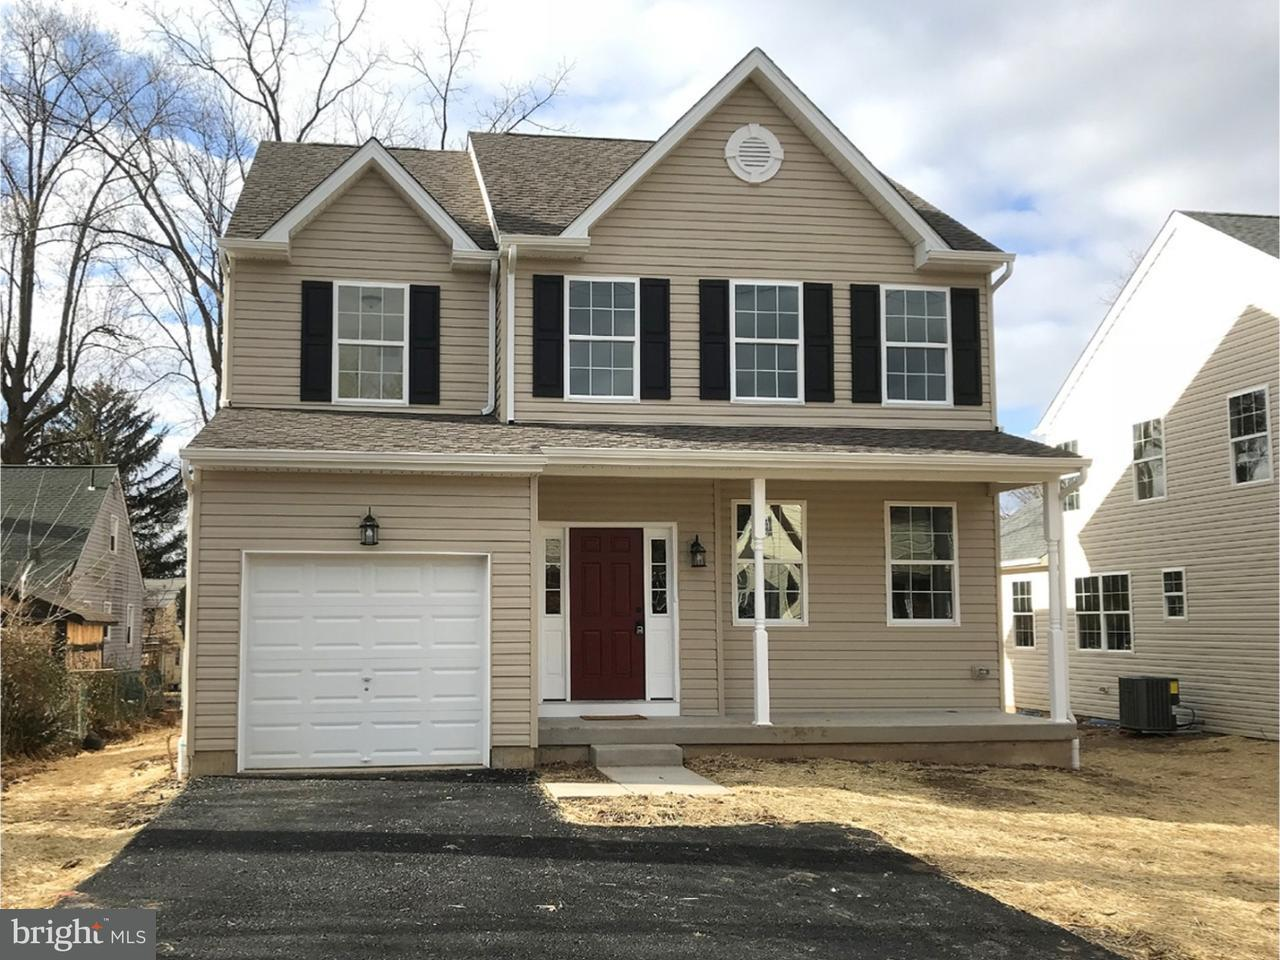 Single Family Home for Sale at 335 LANCASTER Avenue Hatboro, Pennsylvania 19040 United States